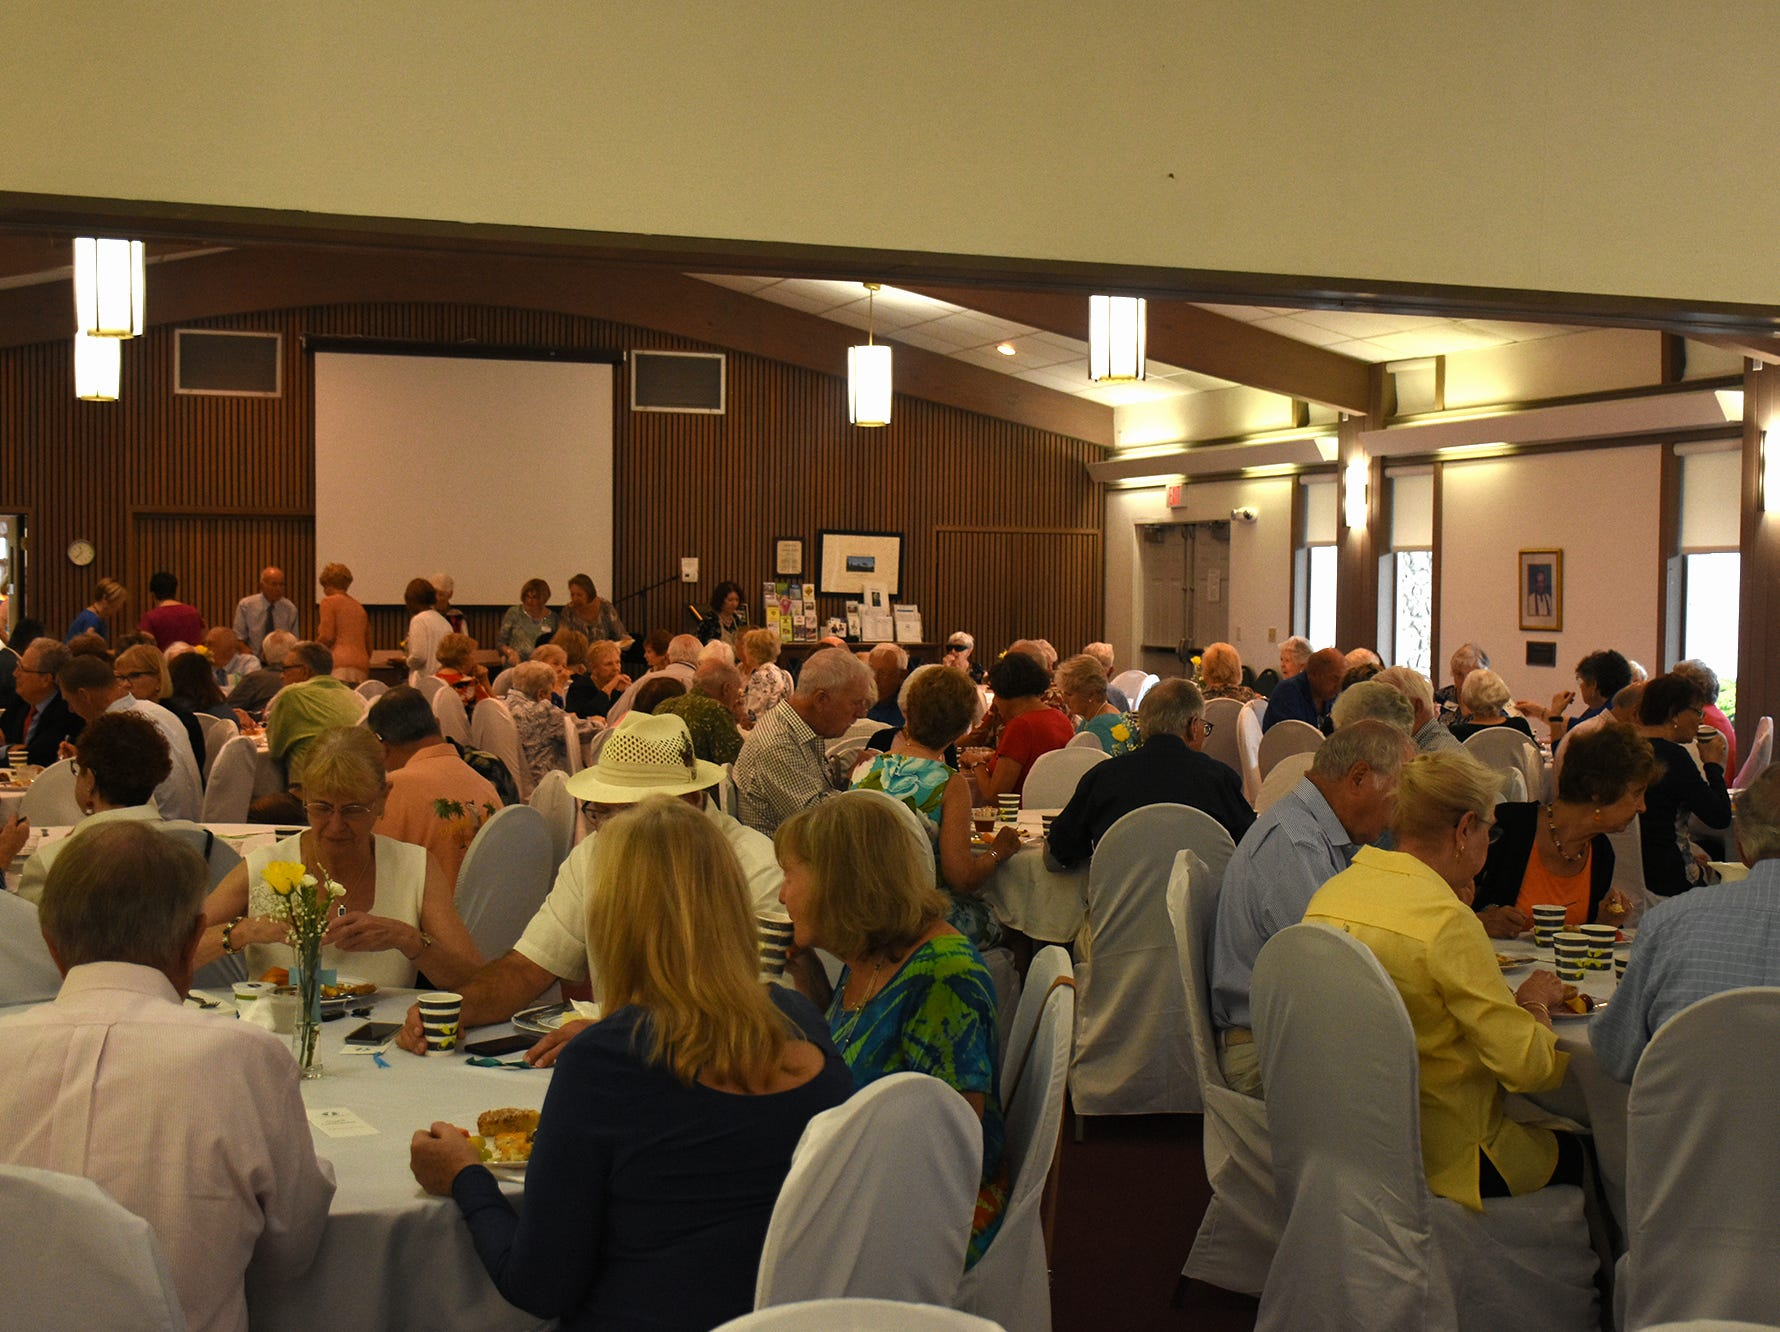 Congregants fill the fellowship hall at the brunch following the dedication. United Church of Marco Island held a ceremony Sunday dedicating their newly erected steeple, which was damaged during Hurricane Irma.